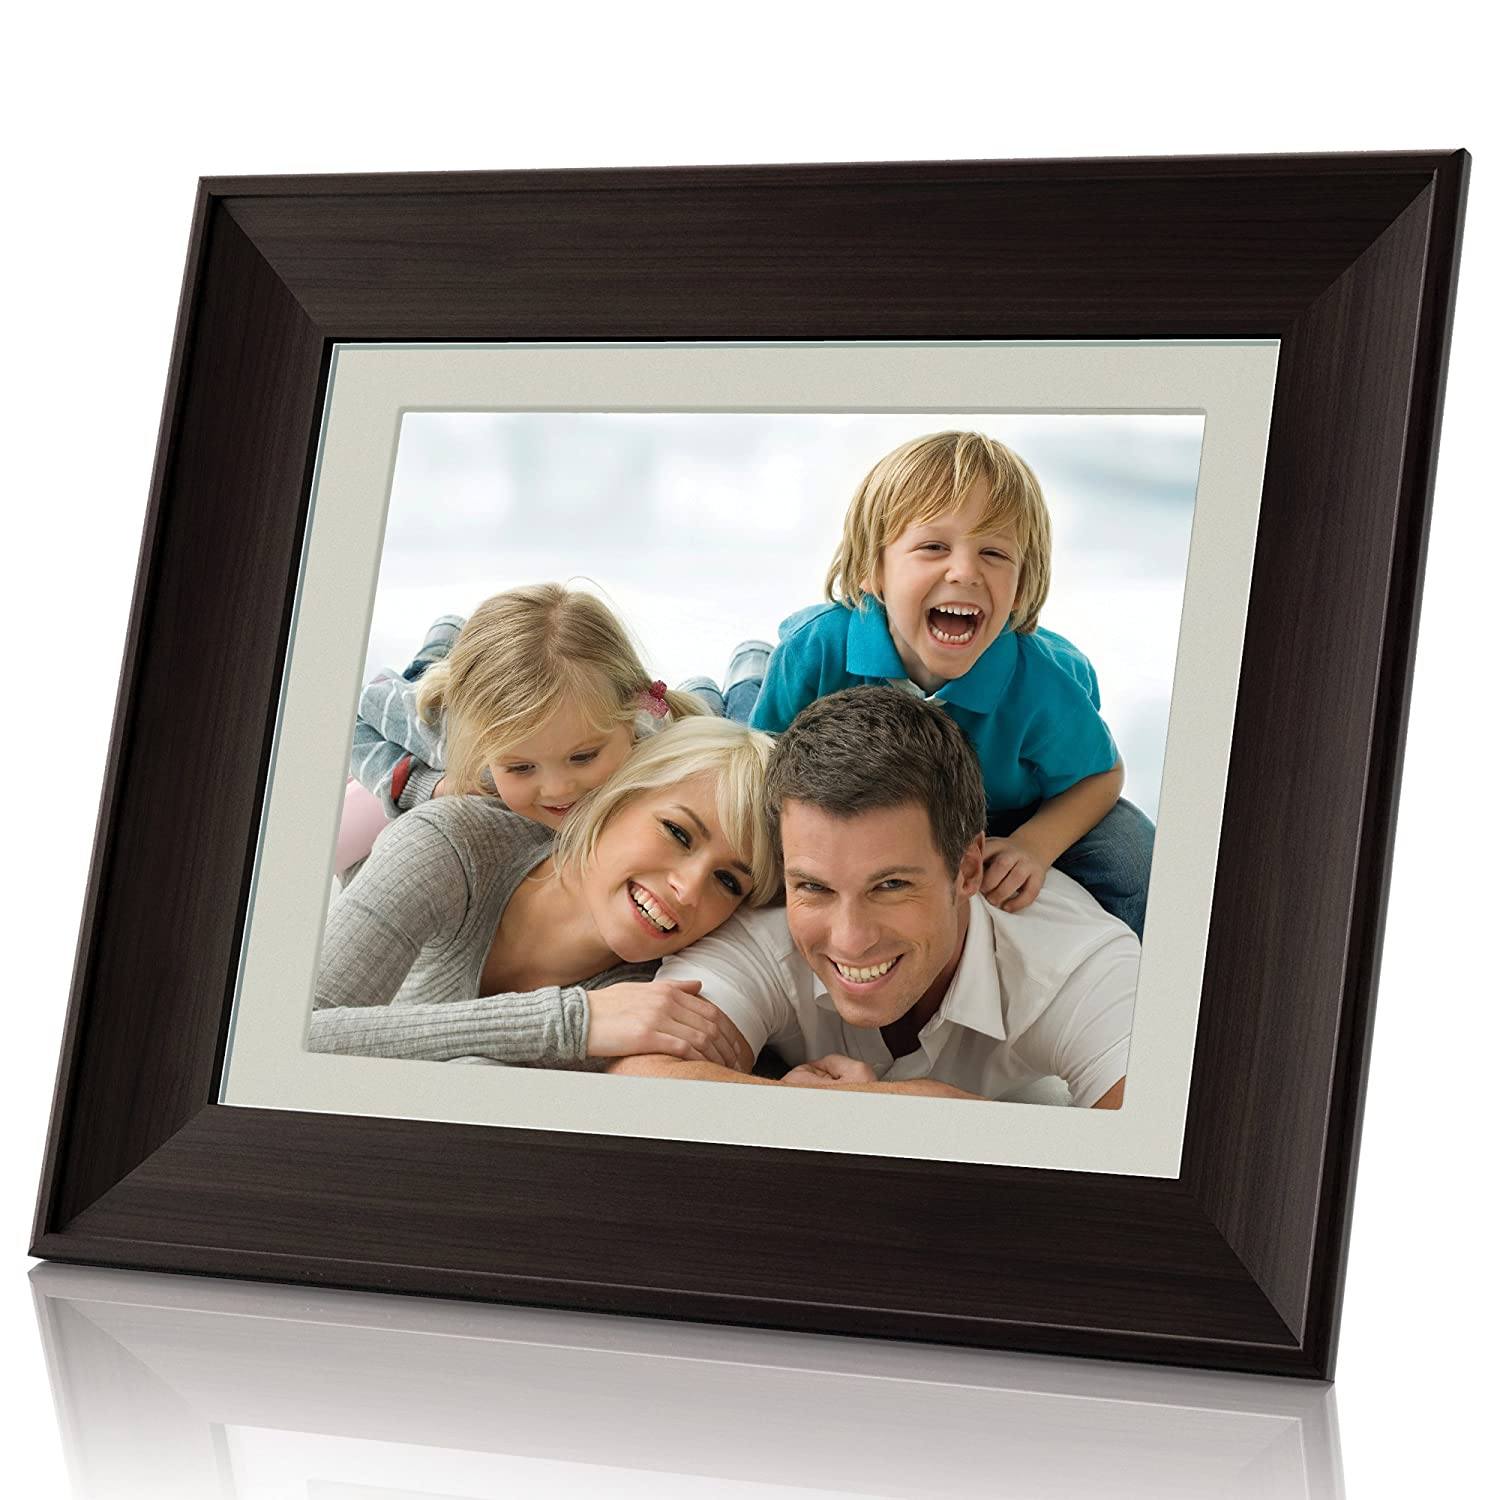 Amazon.com : Coby DP1052 10.4-Inch Digital Photo Frame with MP3 Player  (Wooden Frame) : Digital Picture Frames : Camera & Photo